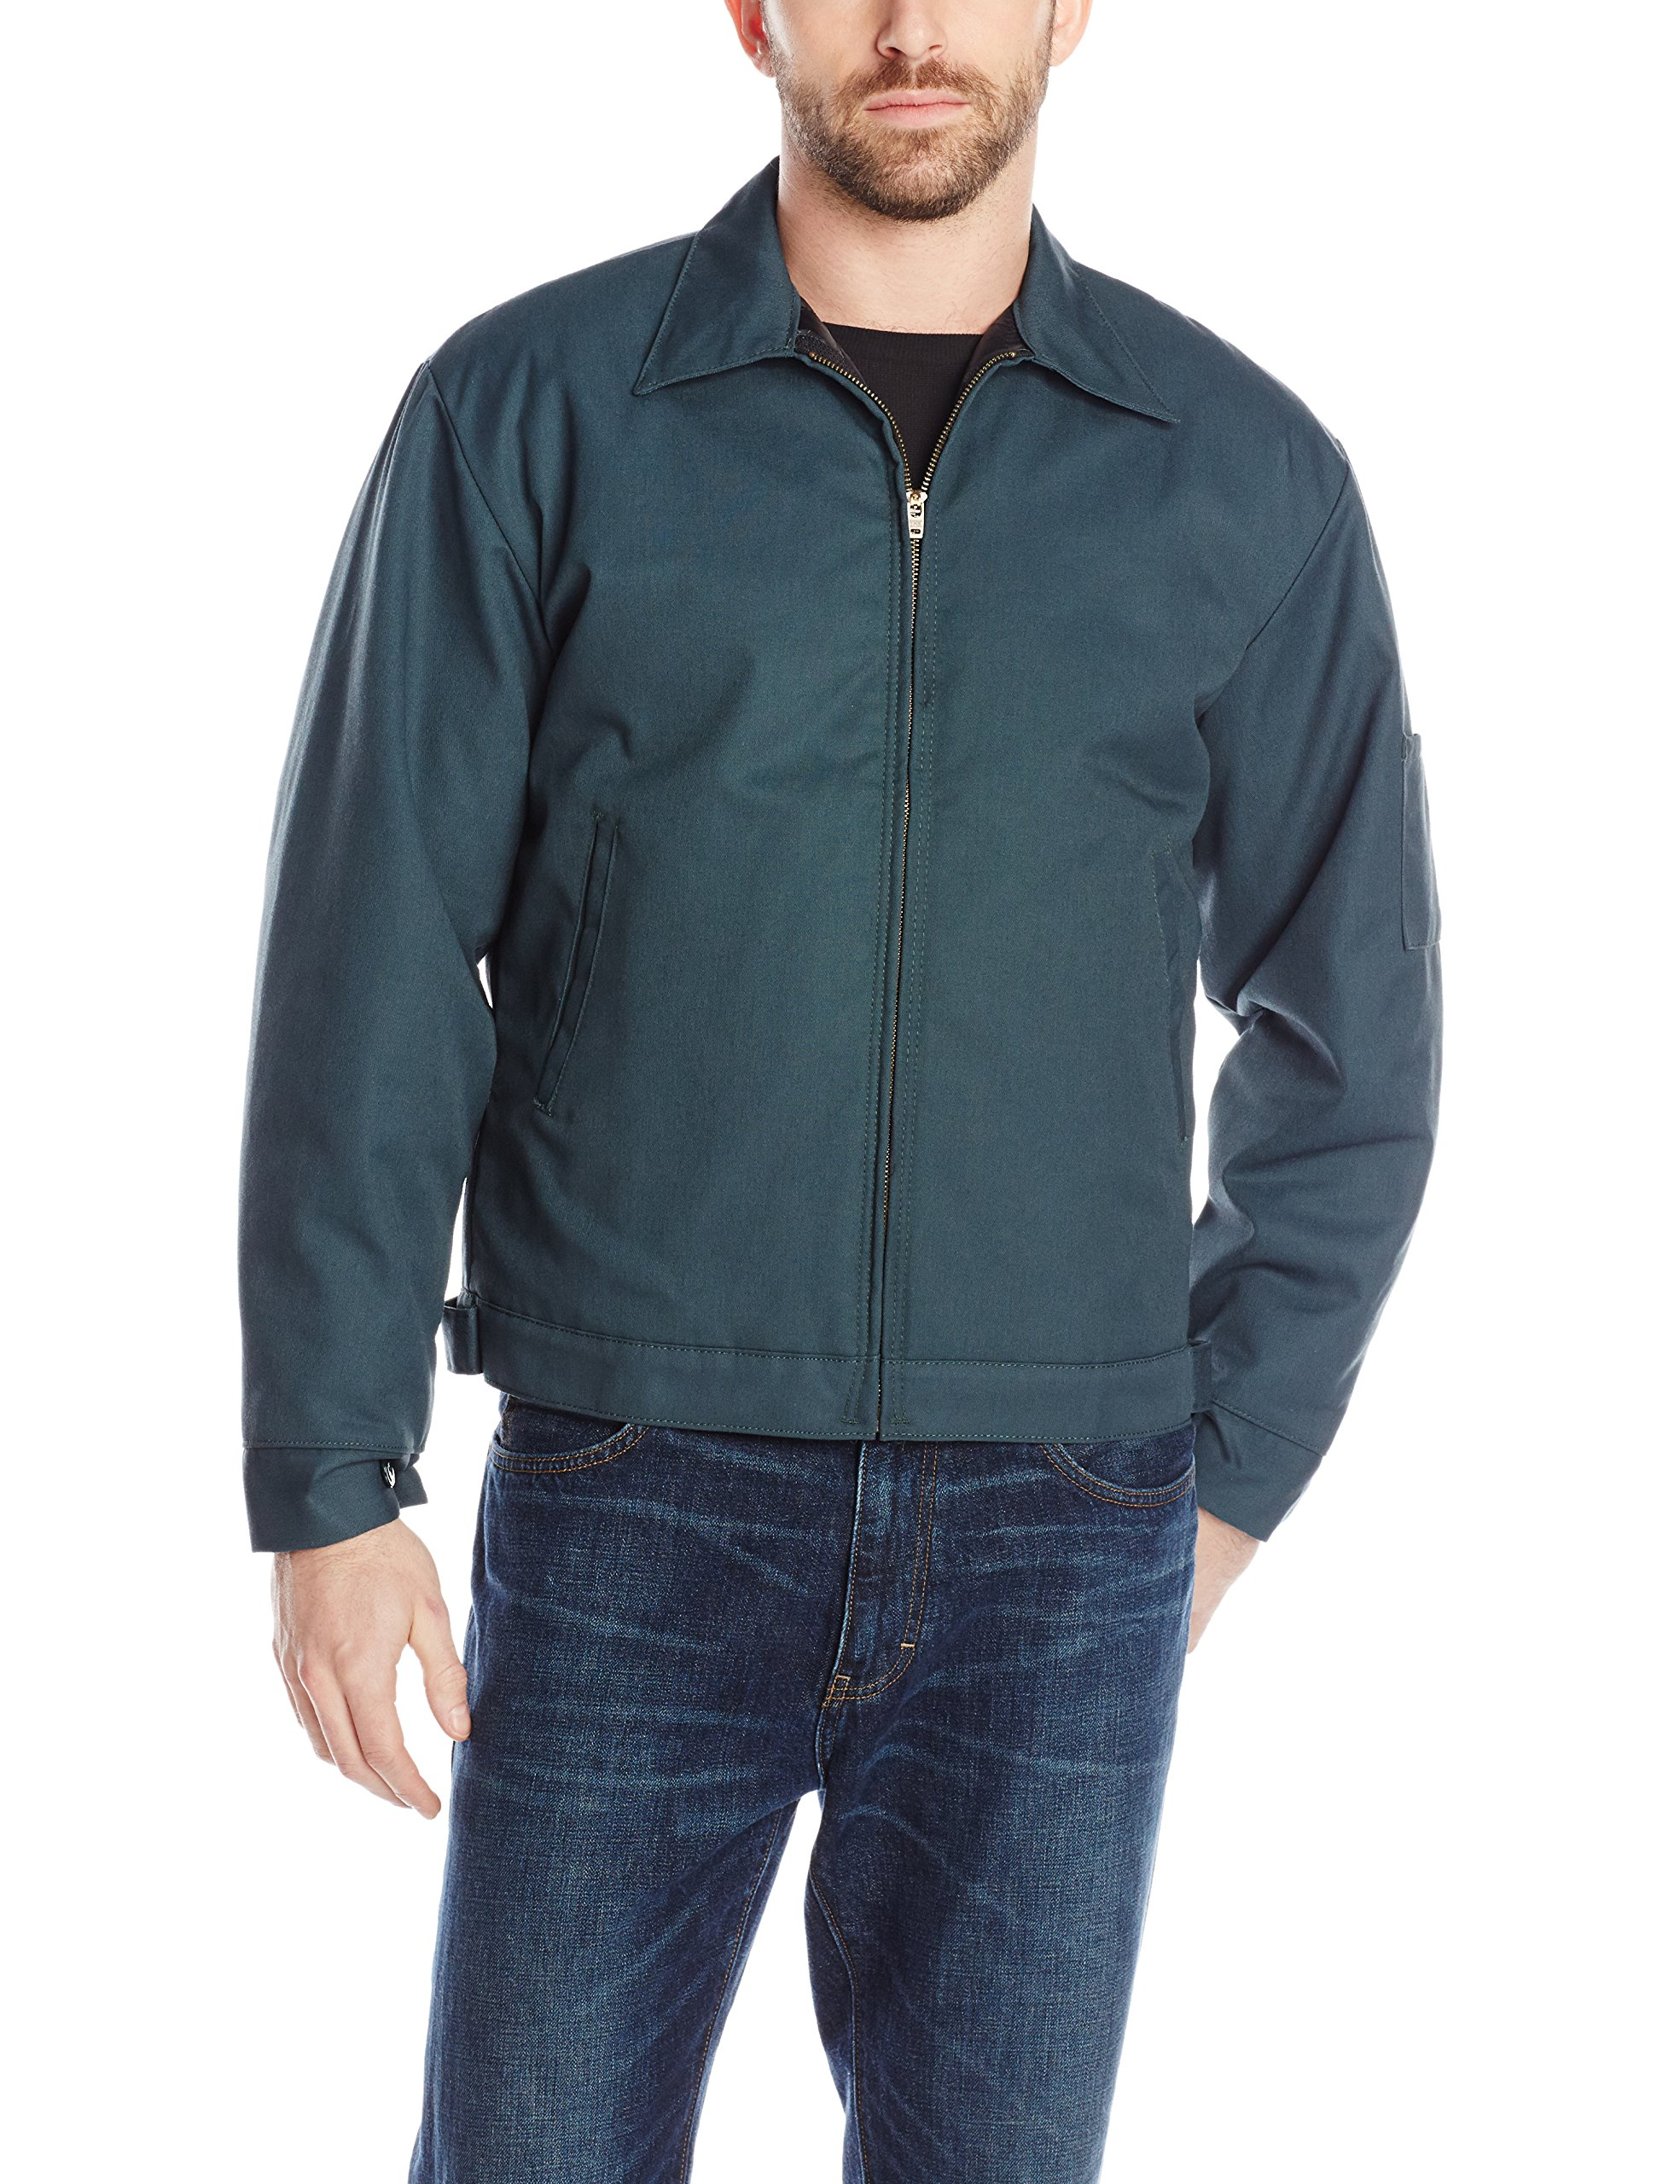 Red Kap Men's Slash Pocket Quilt-Lined Jacket, Spruce Green, Small by Red Kap